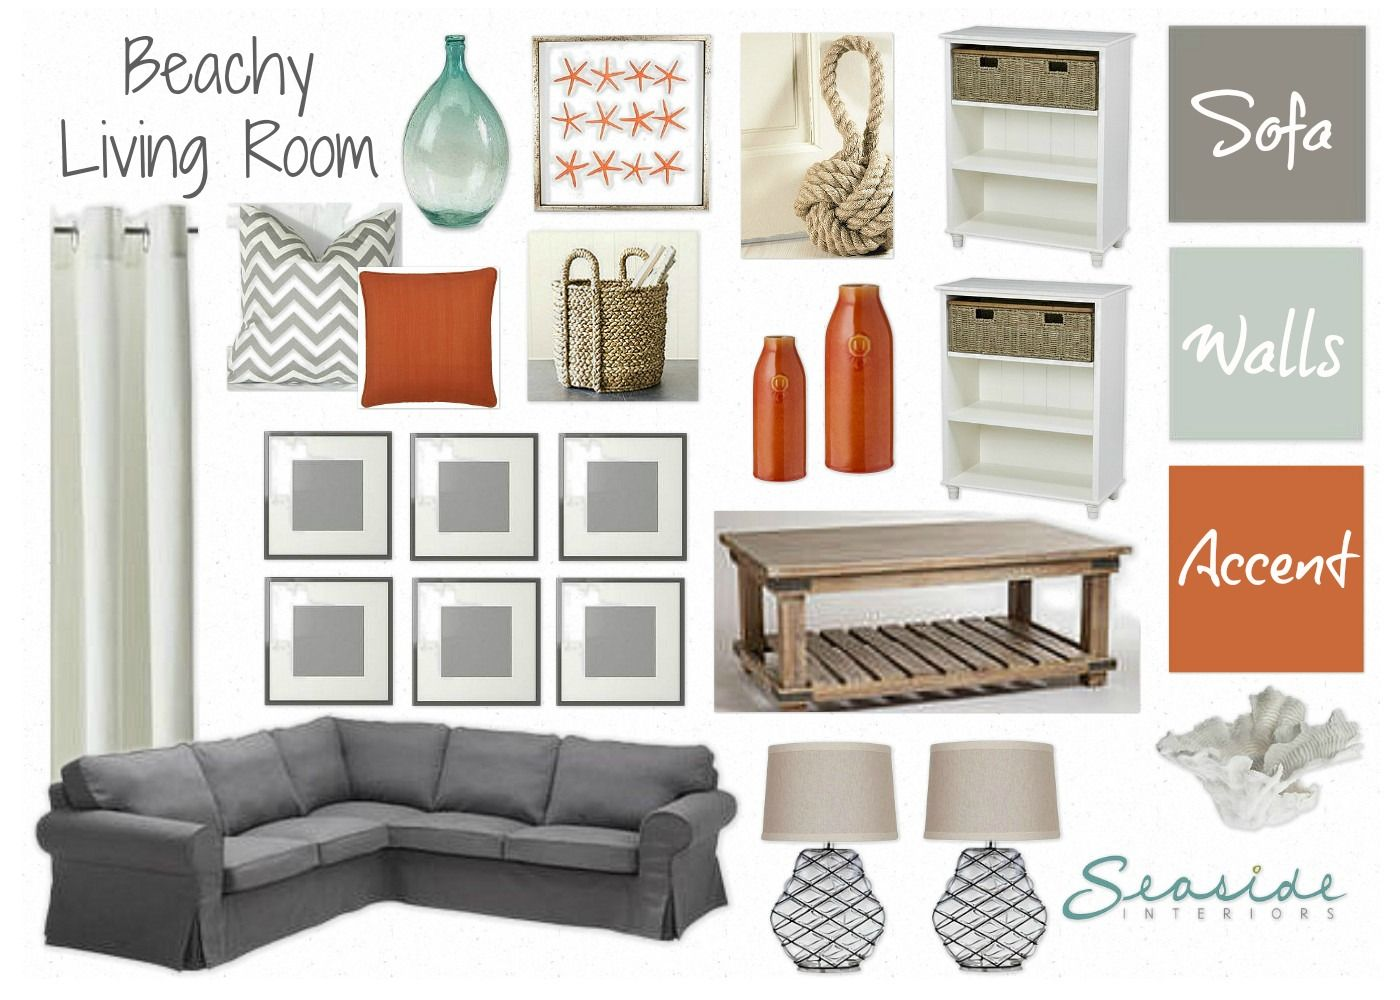 Seaside Interiors: Beachy Living Room with grays and orange!!! | For ...